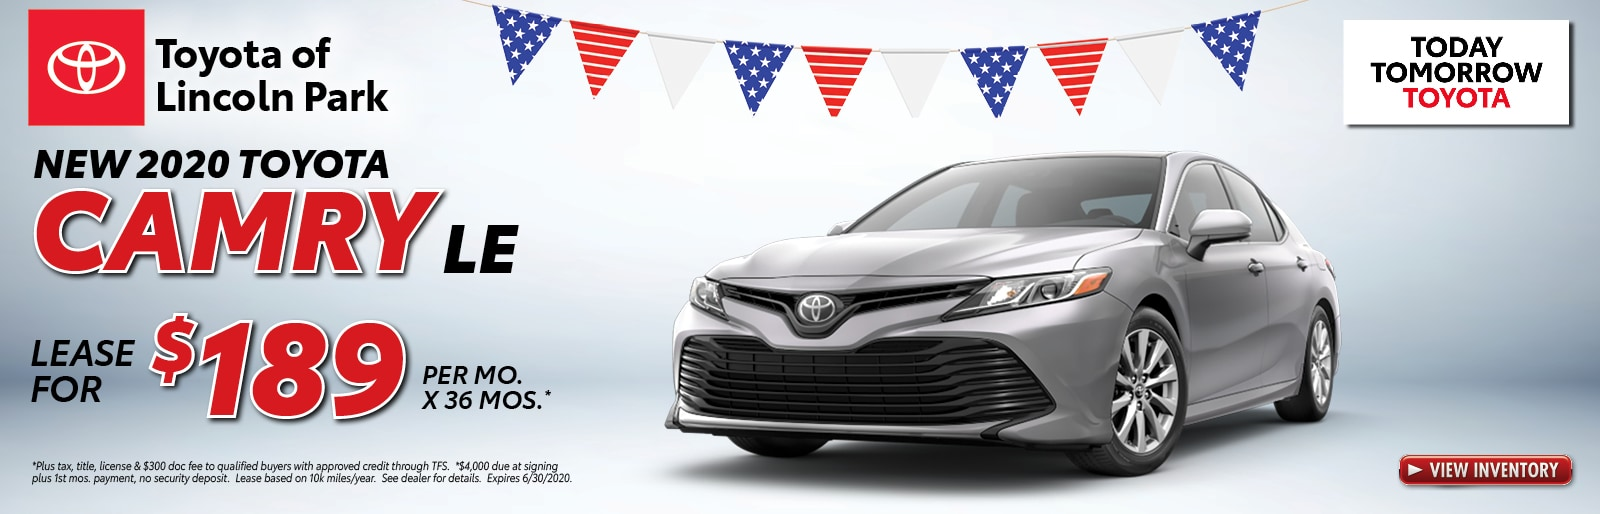 Lease a 2020 Corolla LE for $189/mo. x 36 mos.